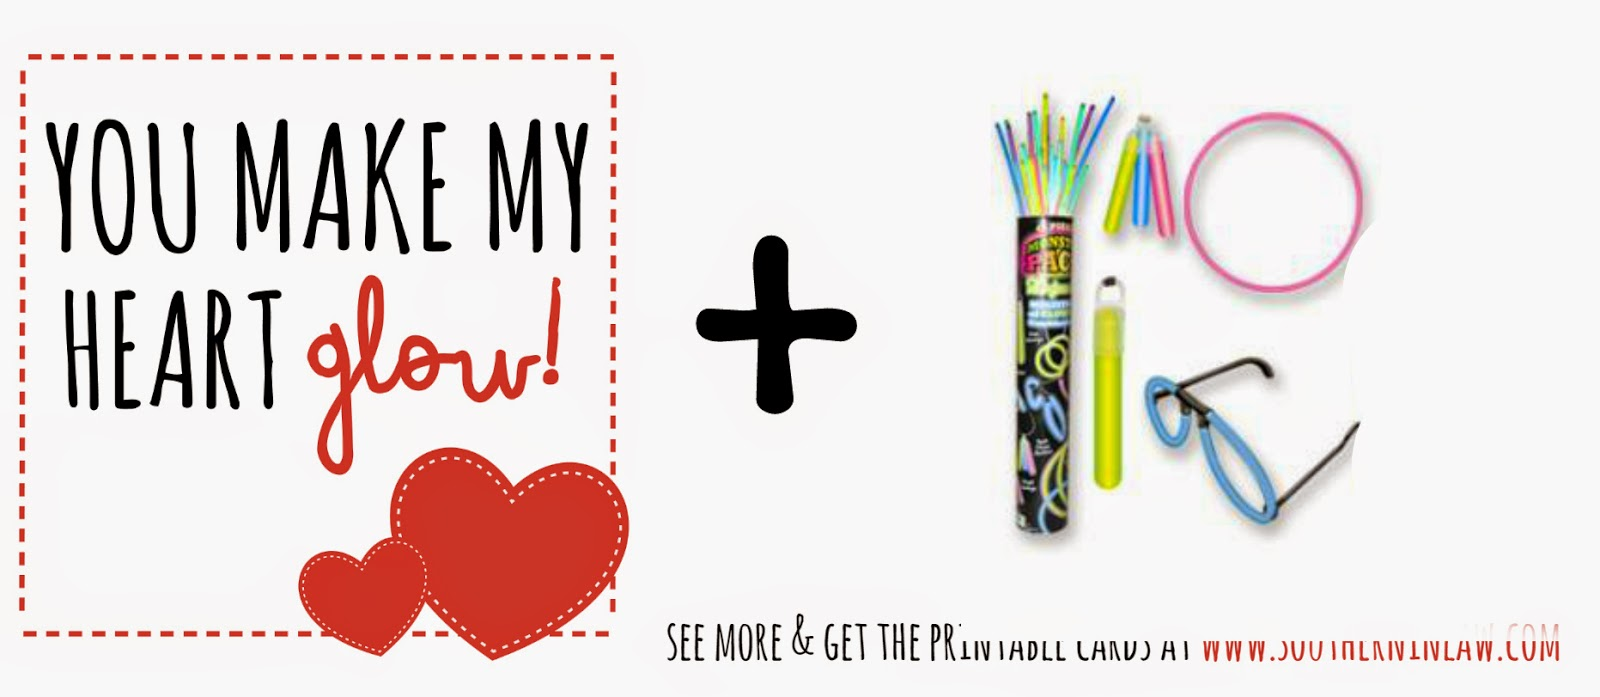 You make my heart glow - Glow sticks Valentines Gift Idea - Punny Valentines Gift Ideas Free Printable Valentines Cards